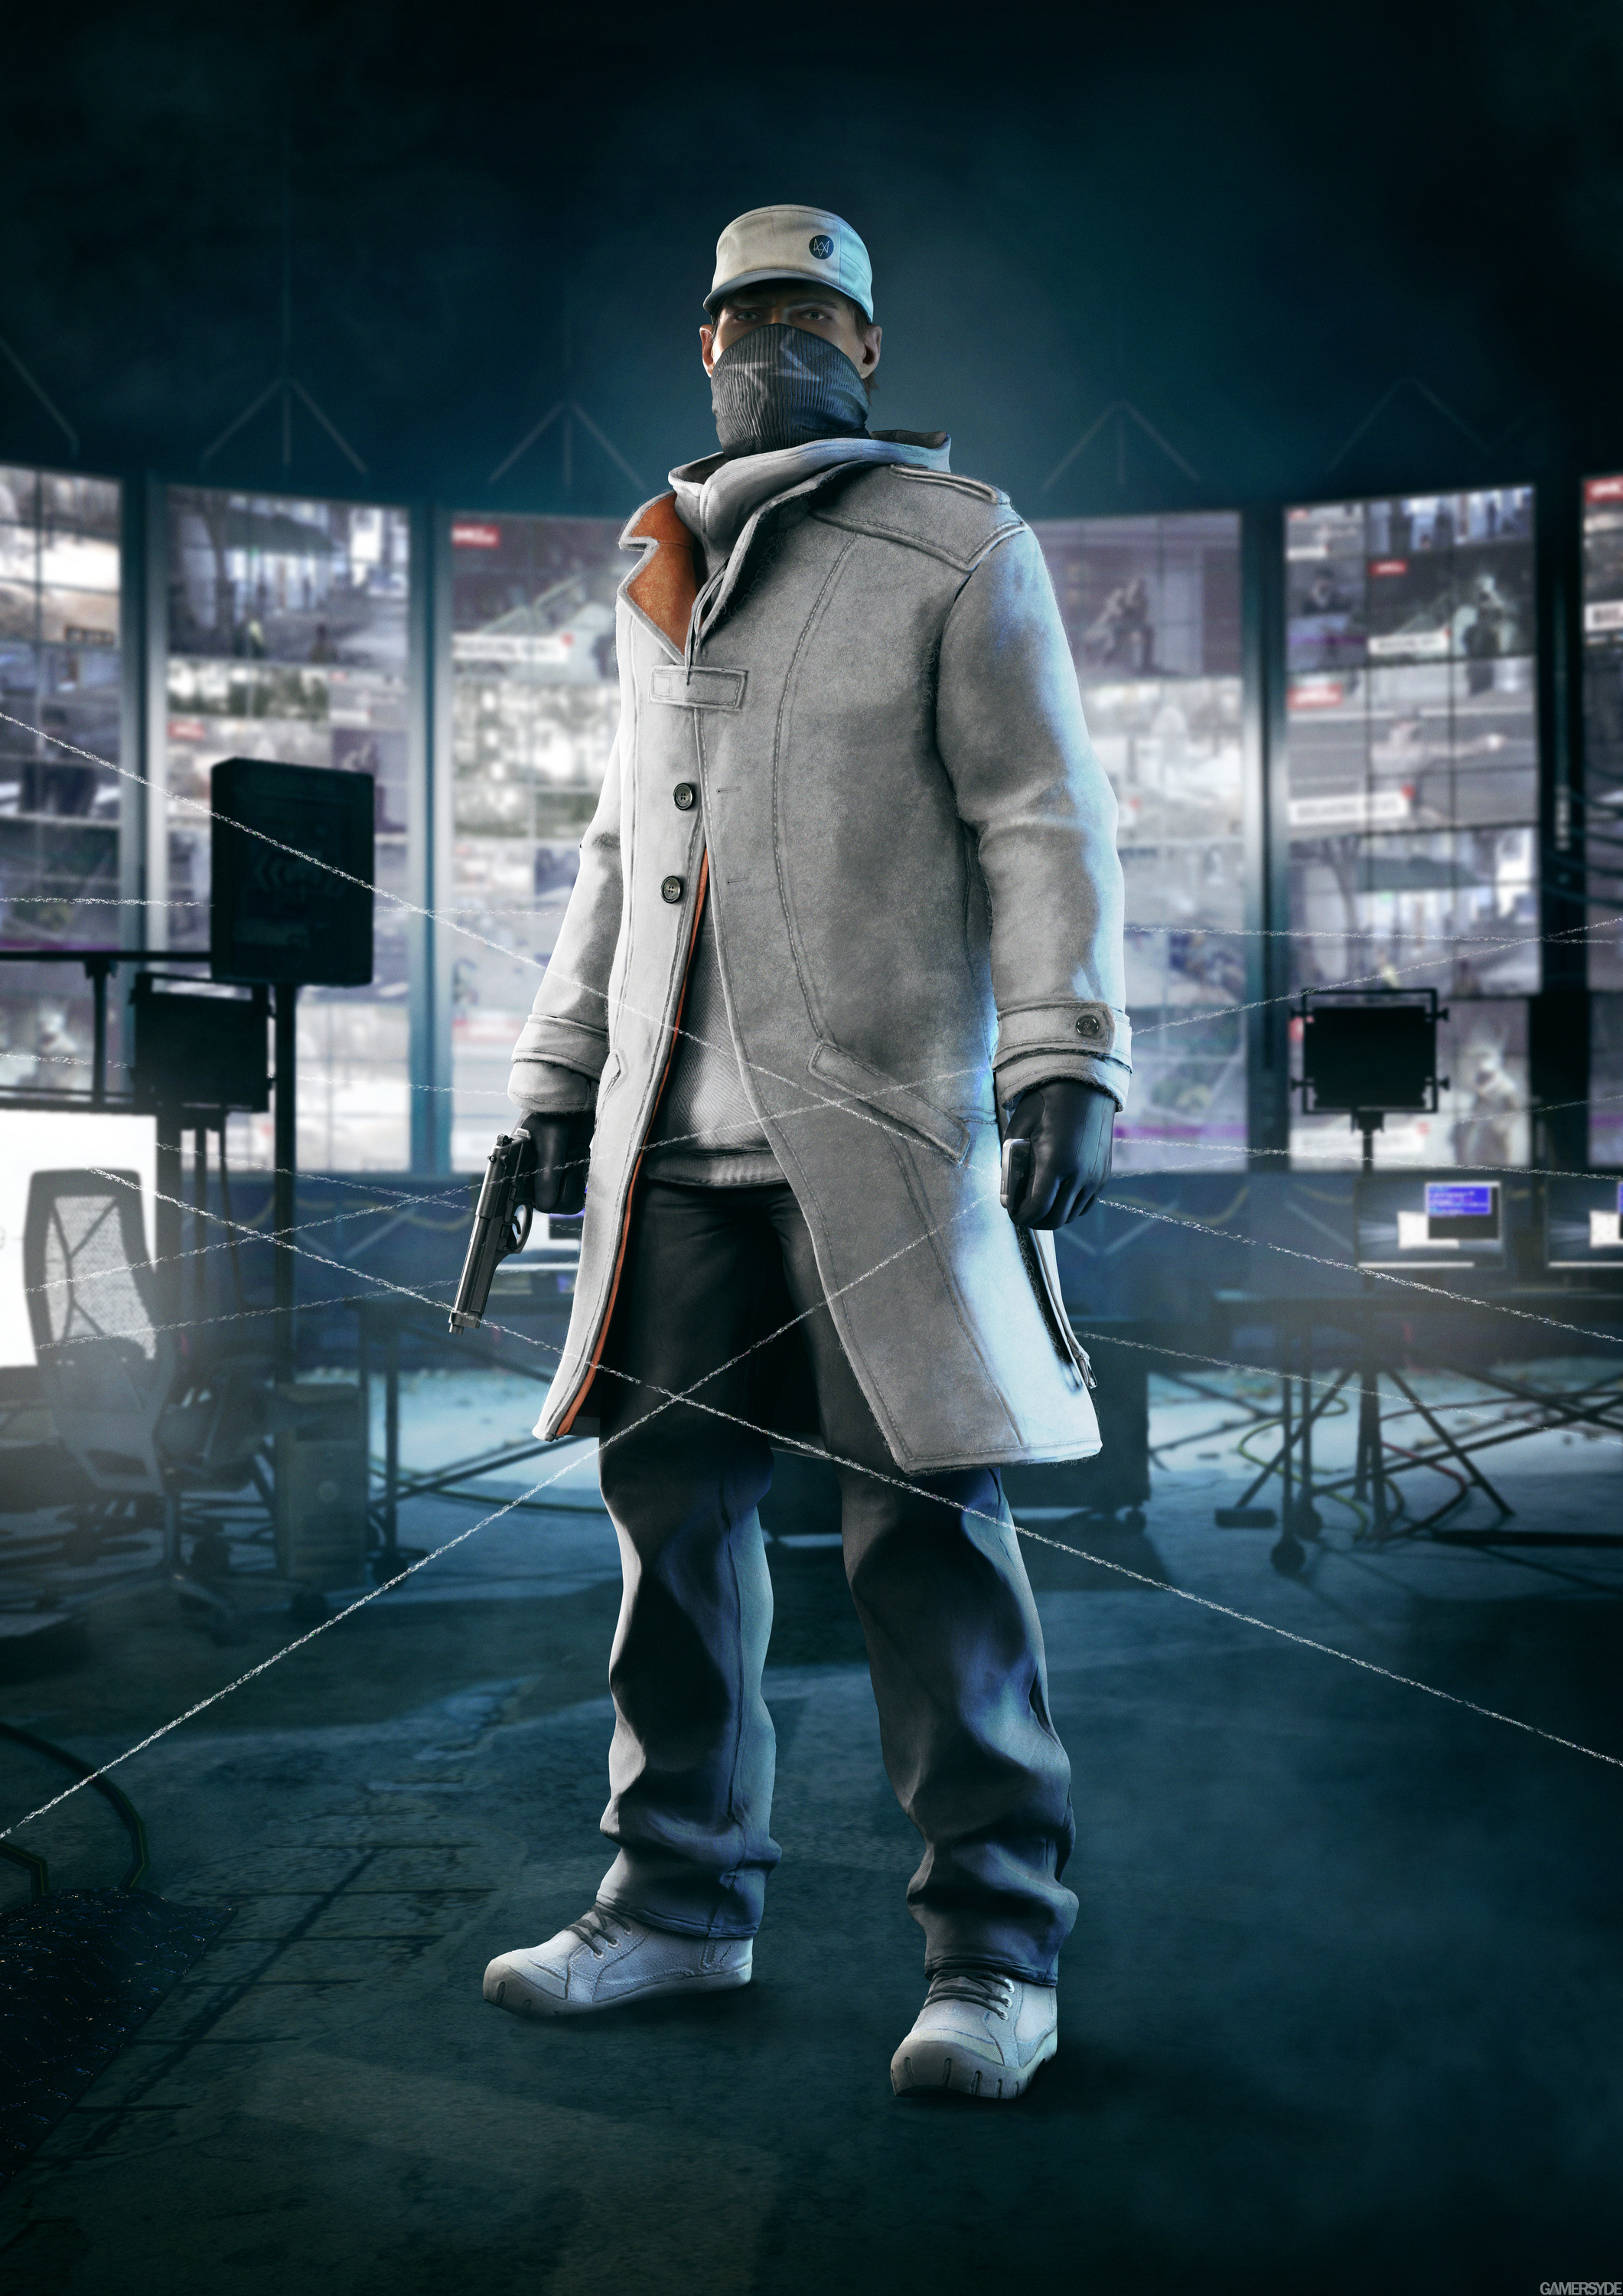 http://images.gamersyde.com/image_watch_dogs-24485-2527_0001.jpg